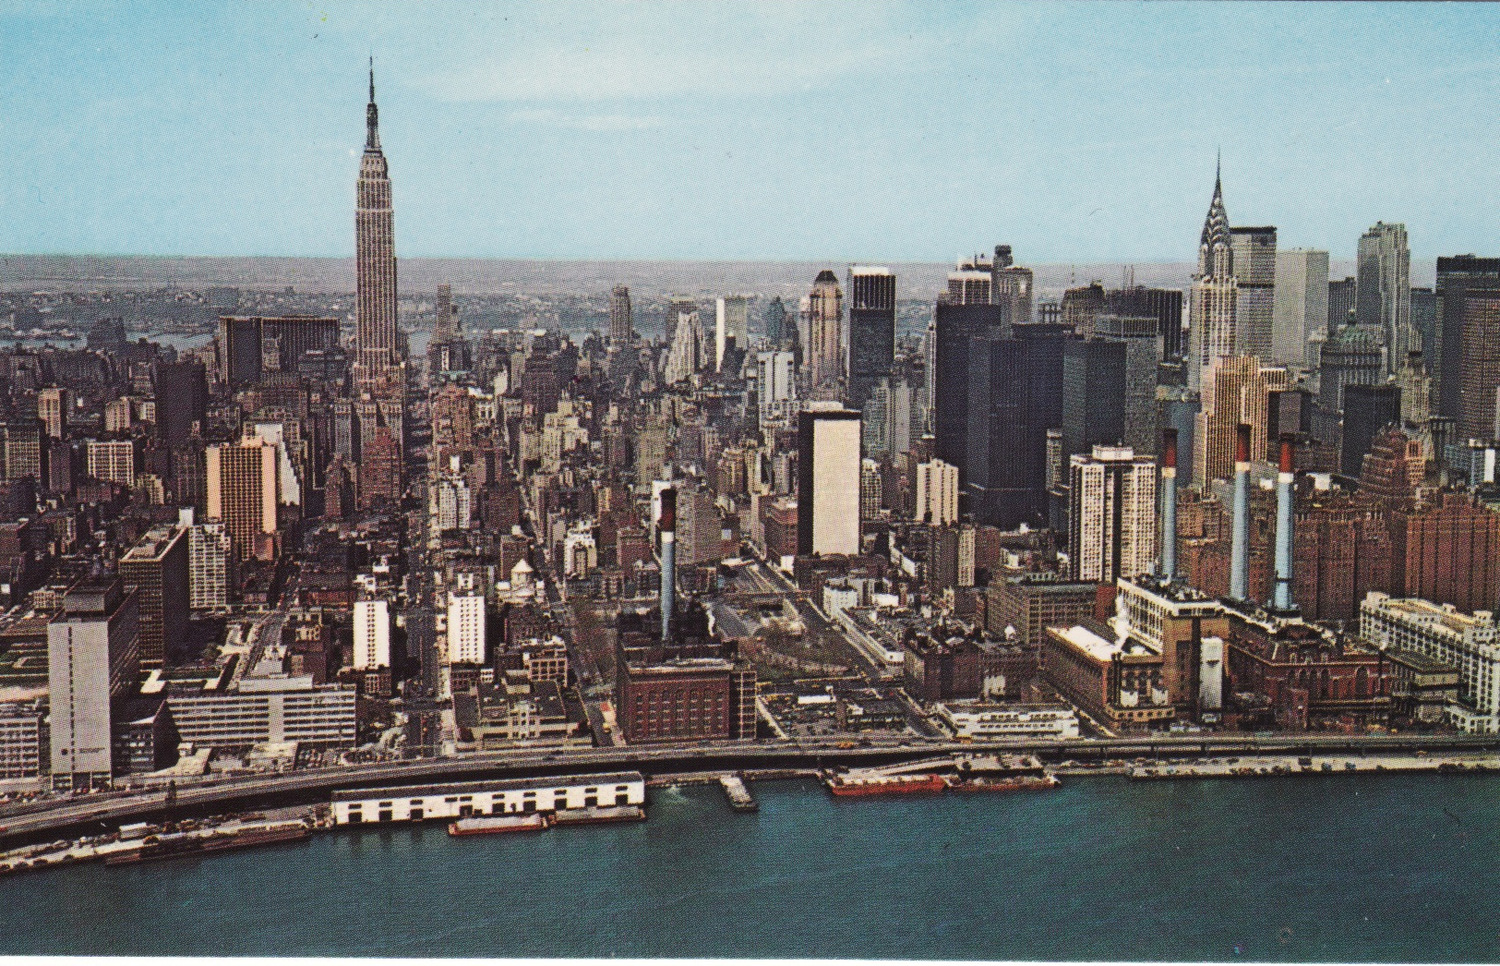 Looking west in 1965 you can see that nothing challenges the Empire State Building in terms of dominance of height